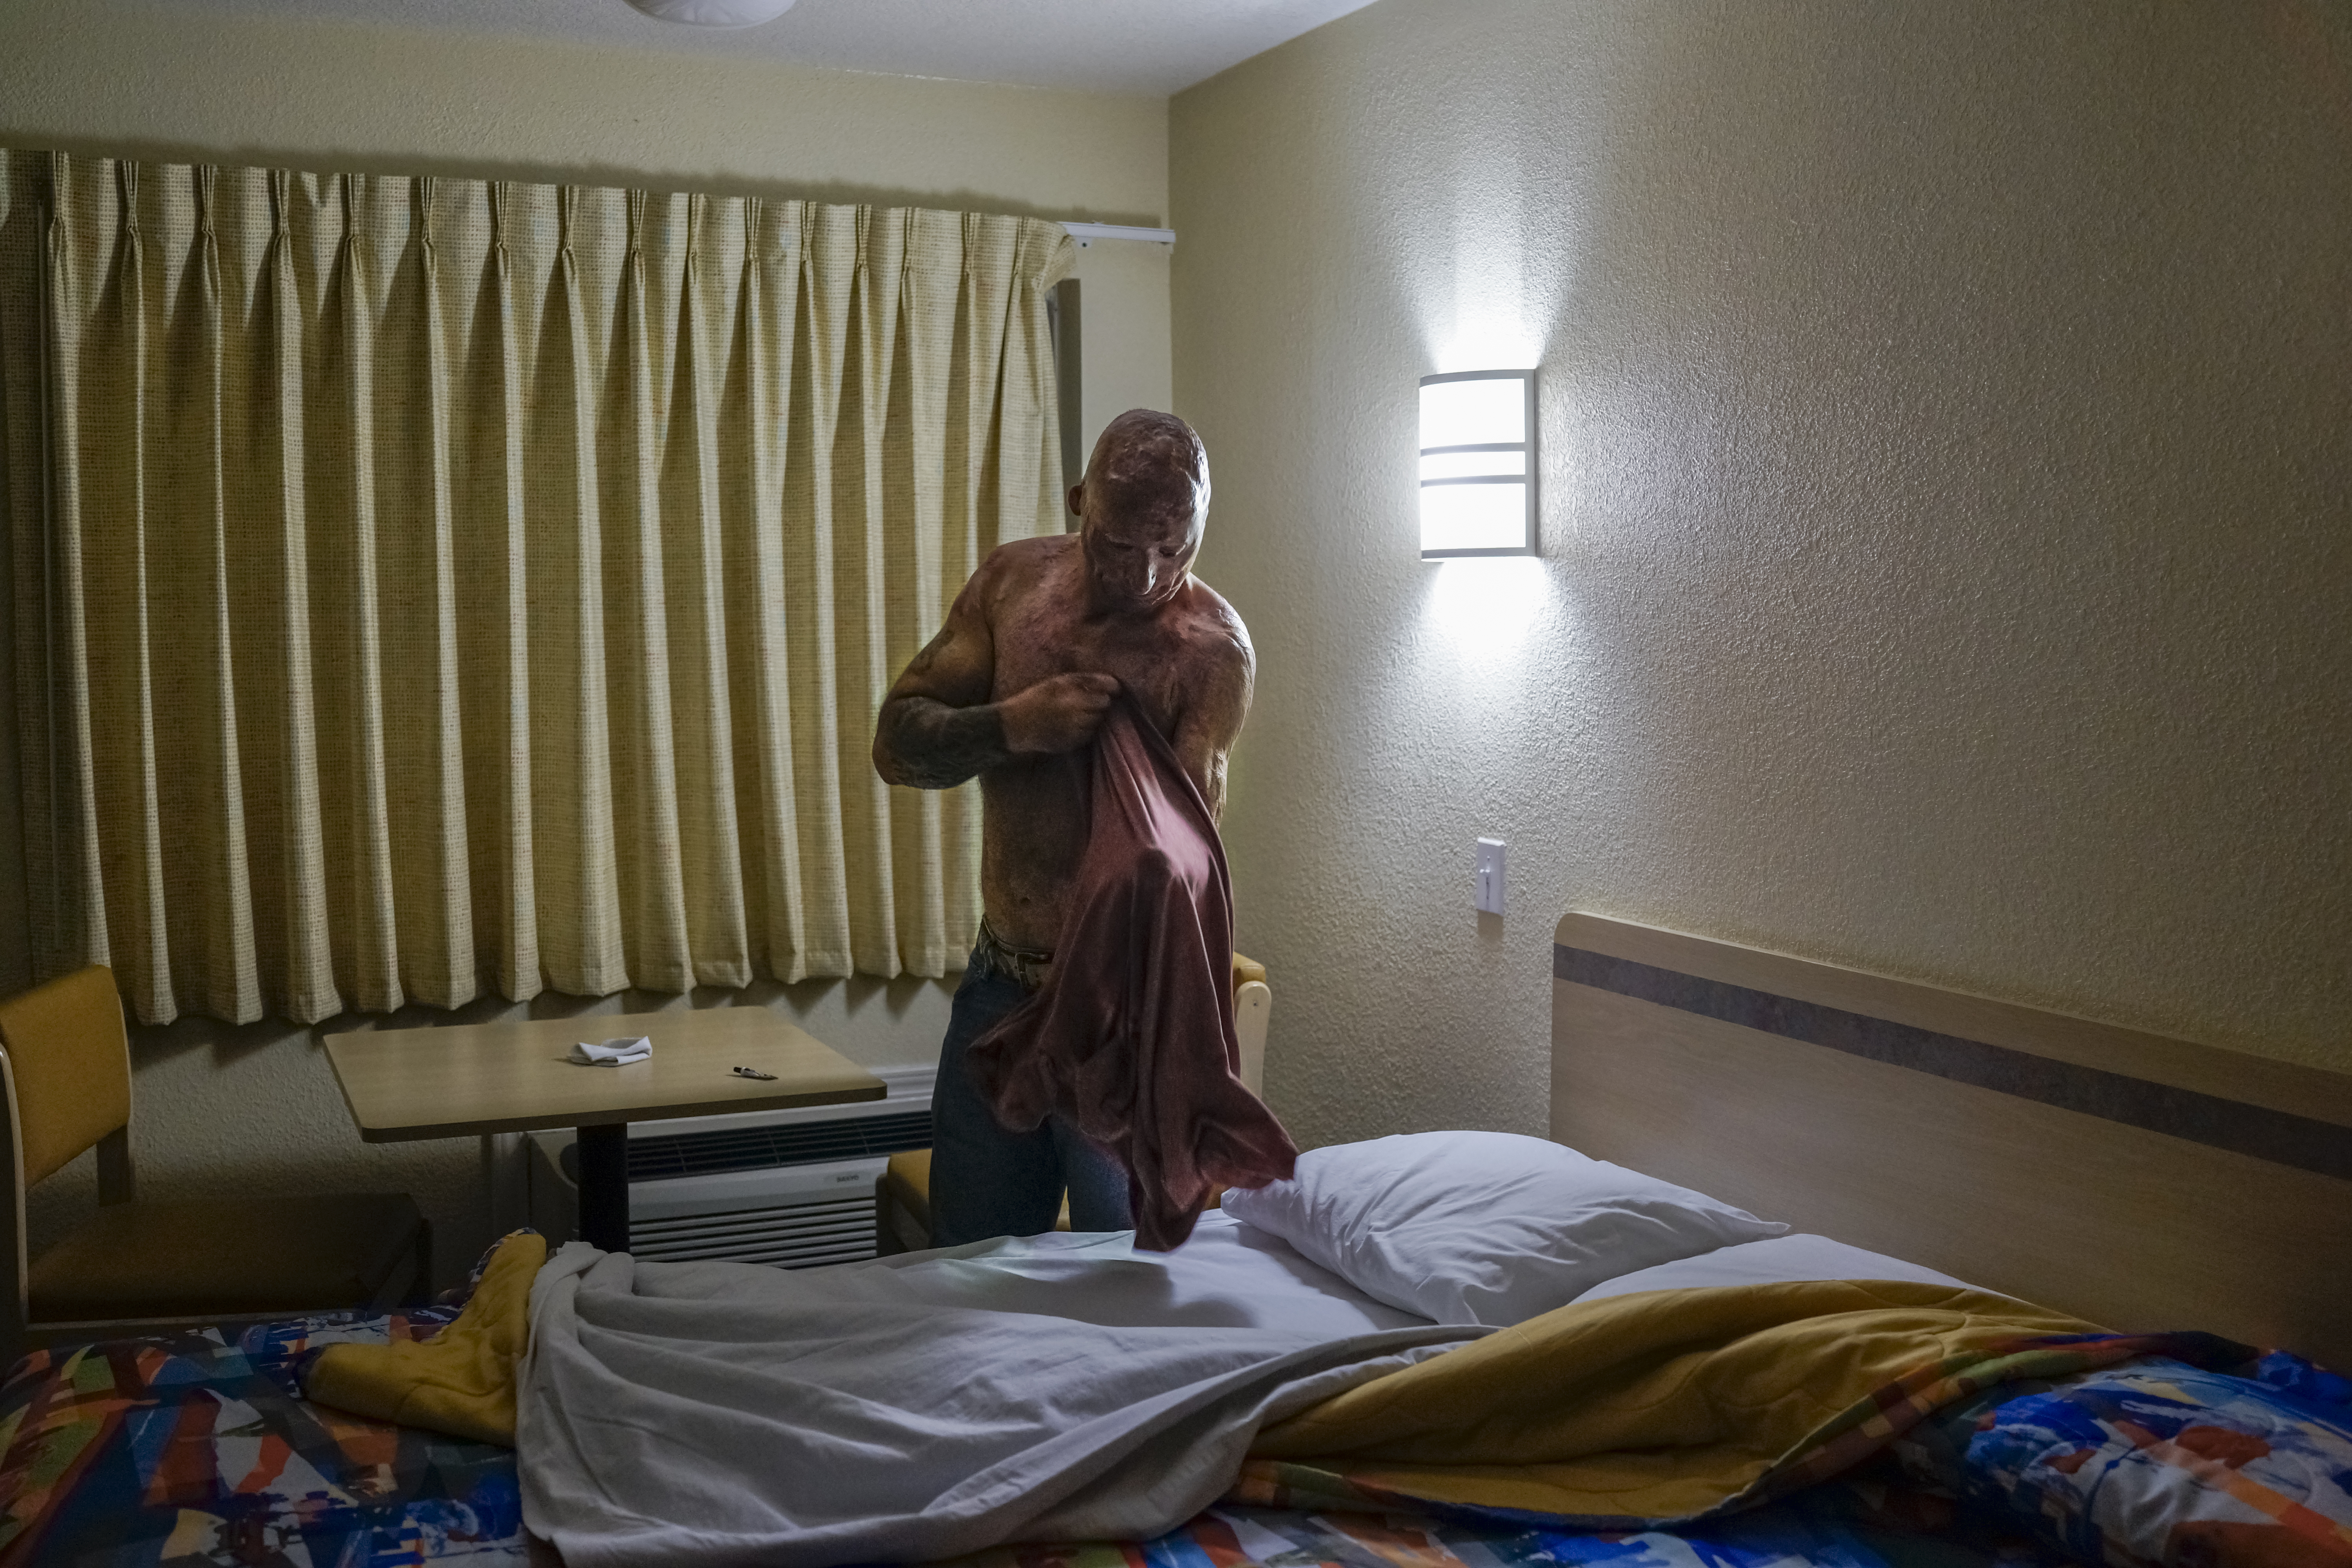 Bobby gets ready for bed at a Motel 6 in Humble, Texas, 2013.